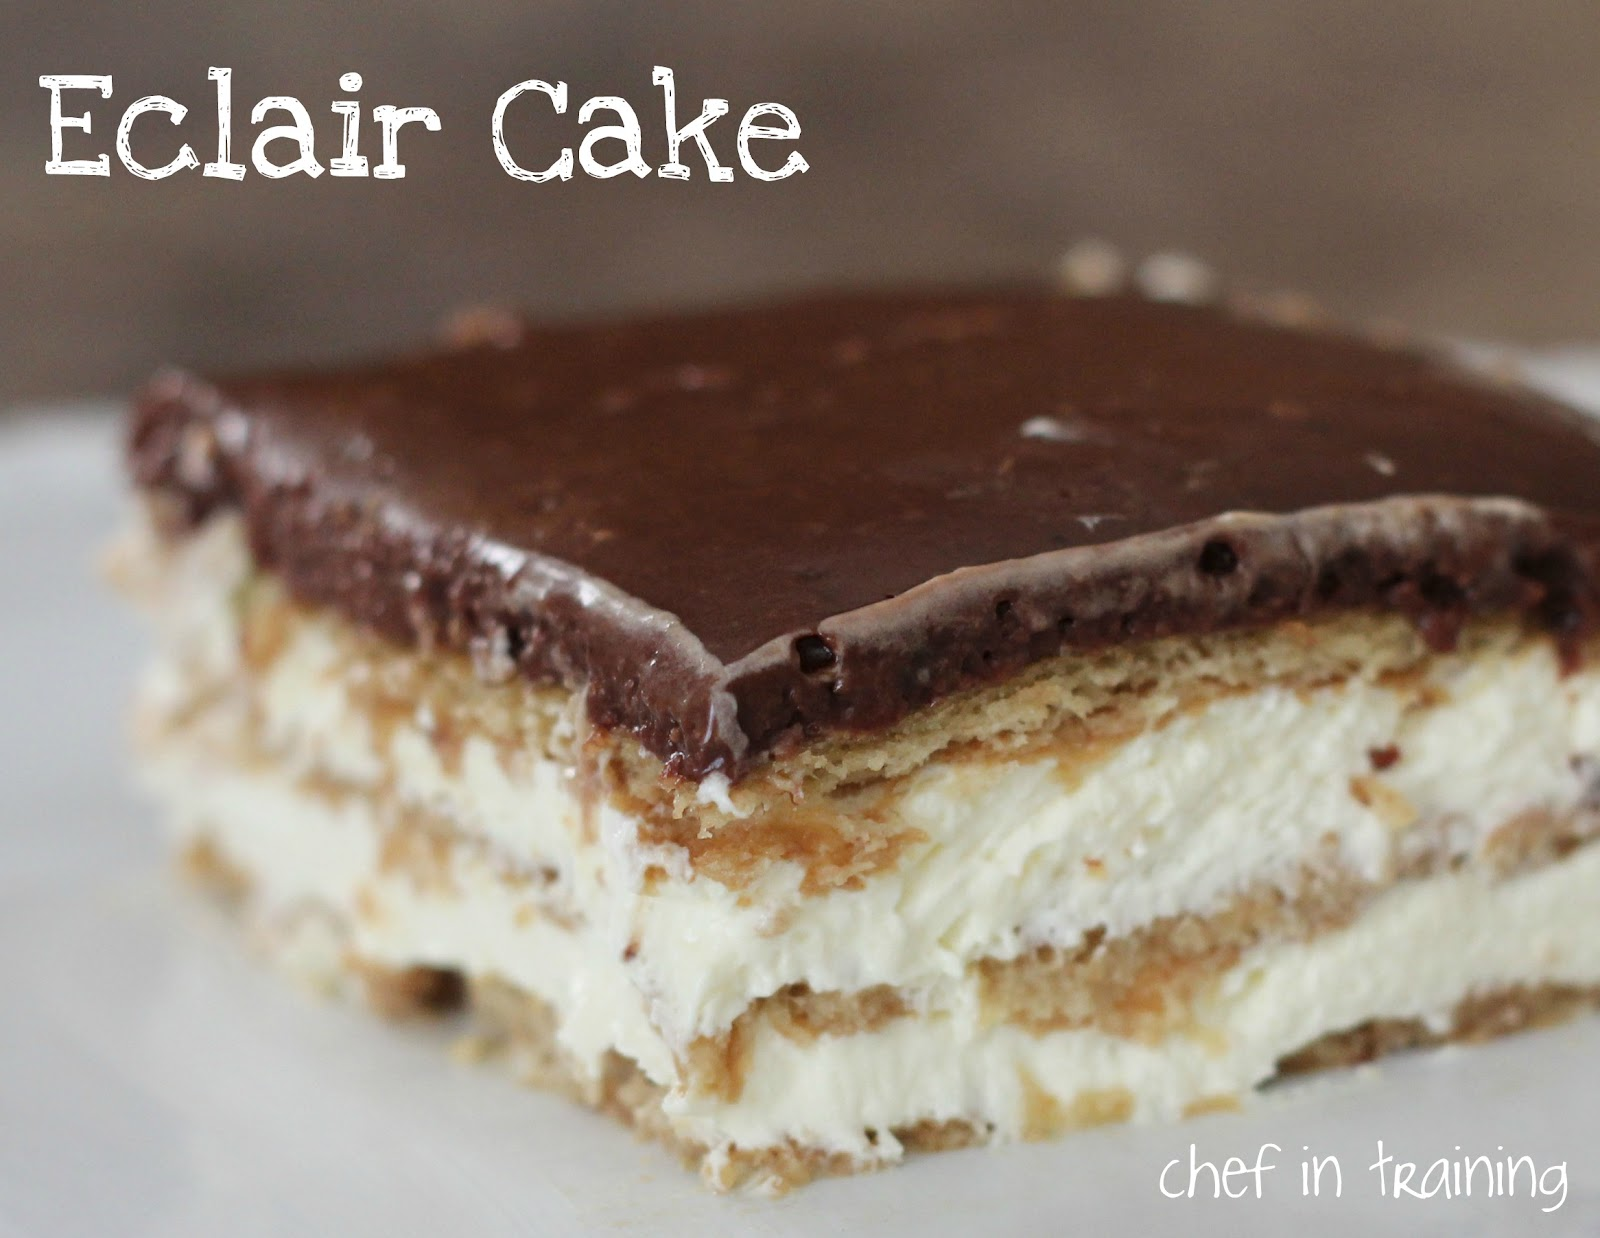 Eclair Cake Chef In Training